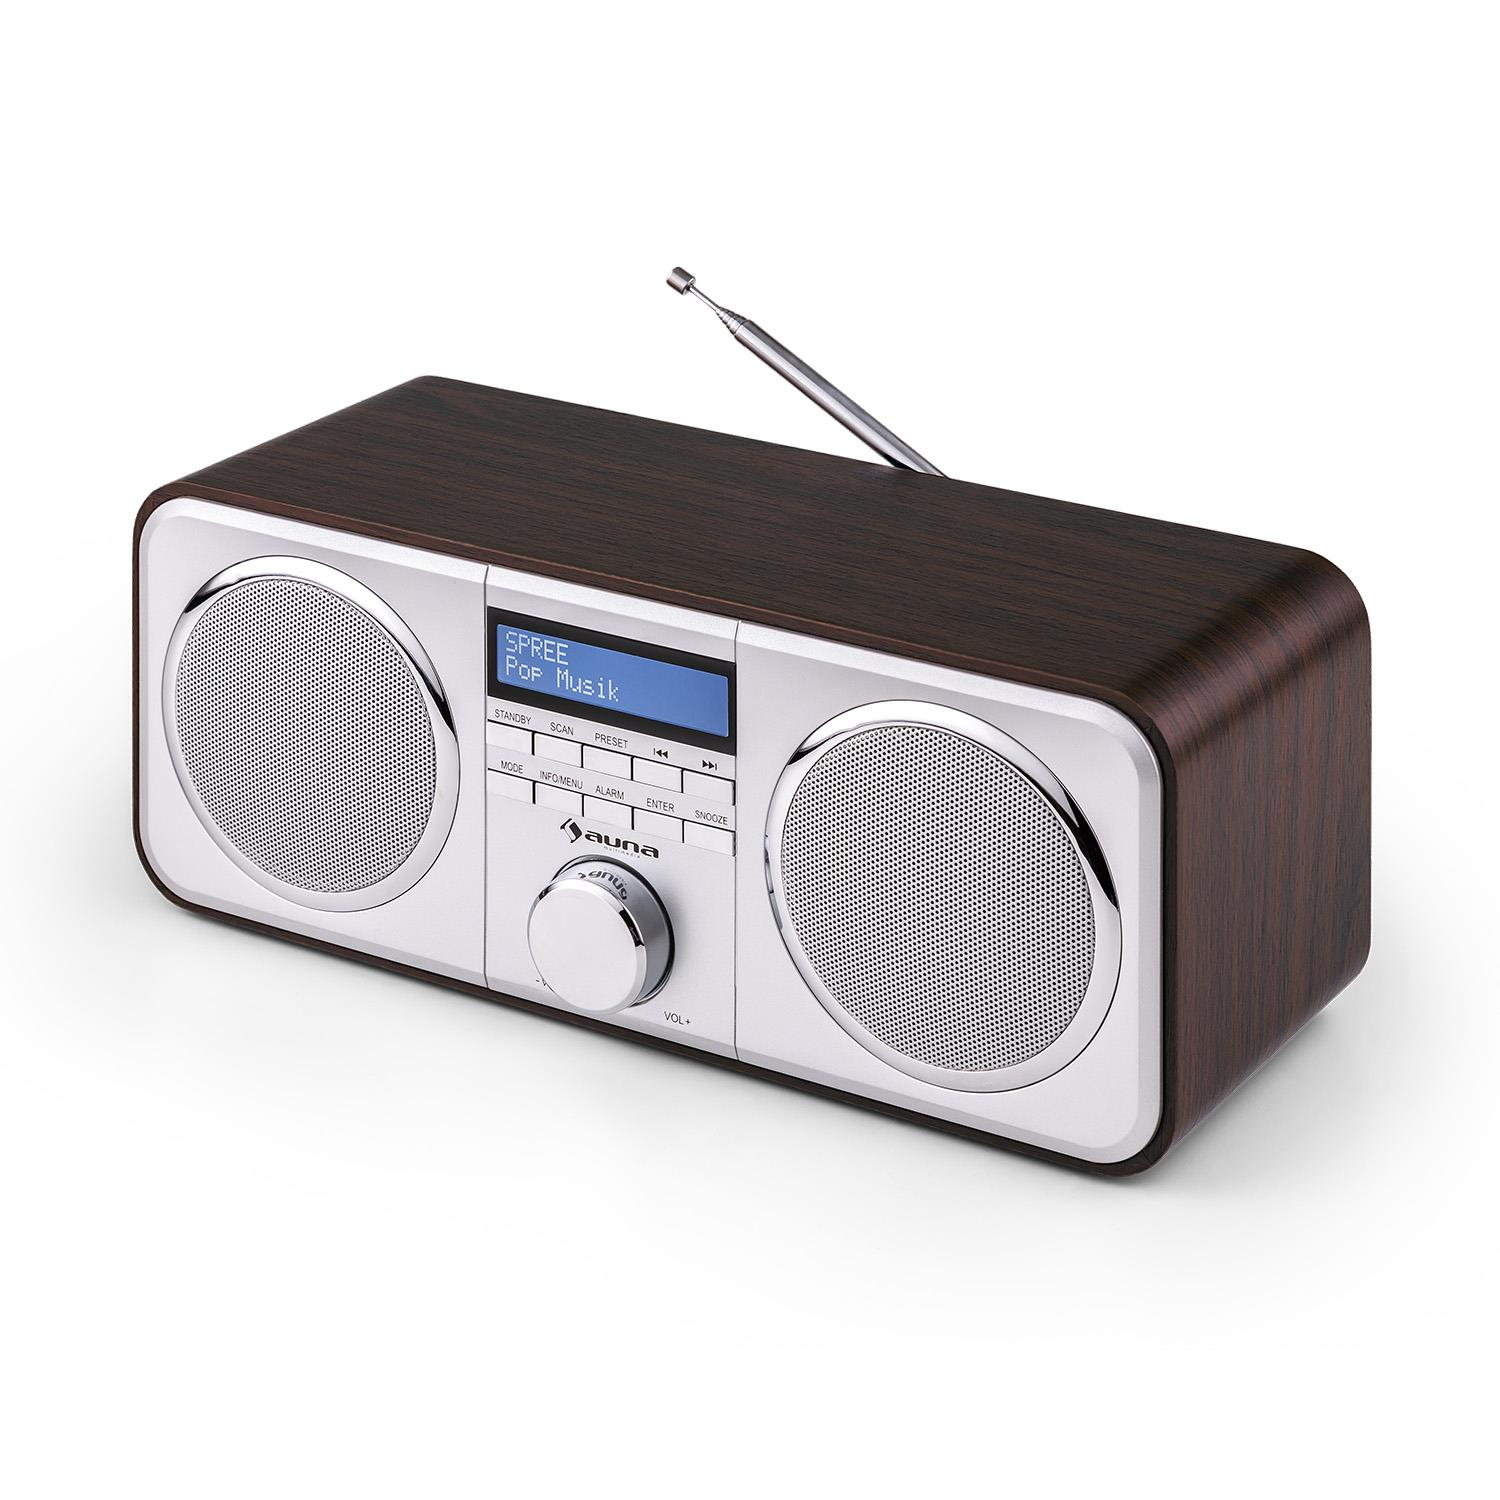 auna georgia dab radio dab fm tuner station presets. Black Bedroom Furniture Sets. Home Design Ideas